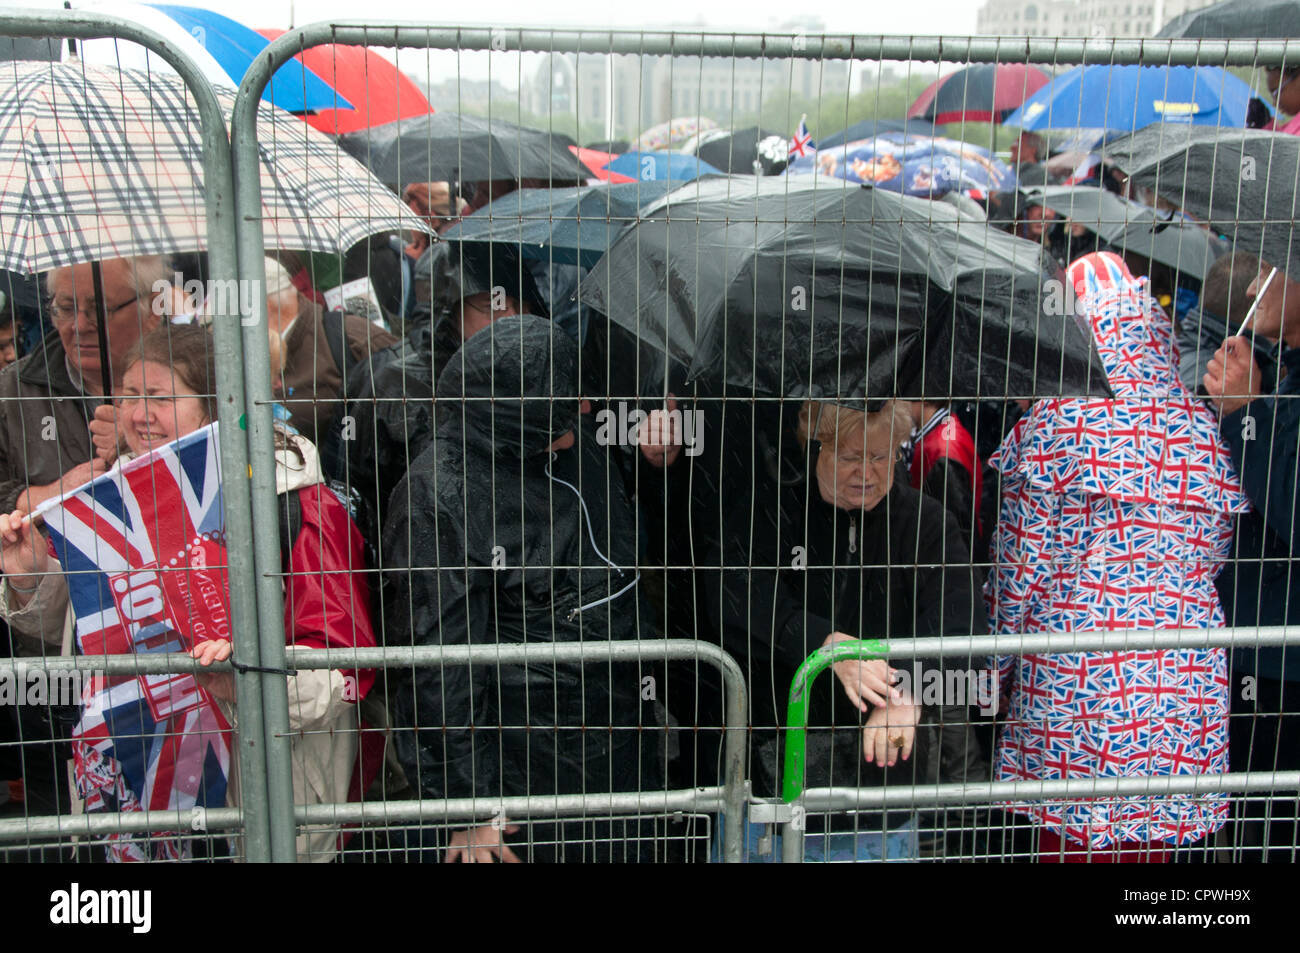 Queen Elizabeth Diamond Jubilee celebrations. Spectators watching the flotilla behind wire fence in pouring rain - Stock Image